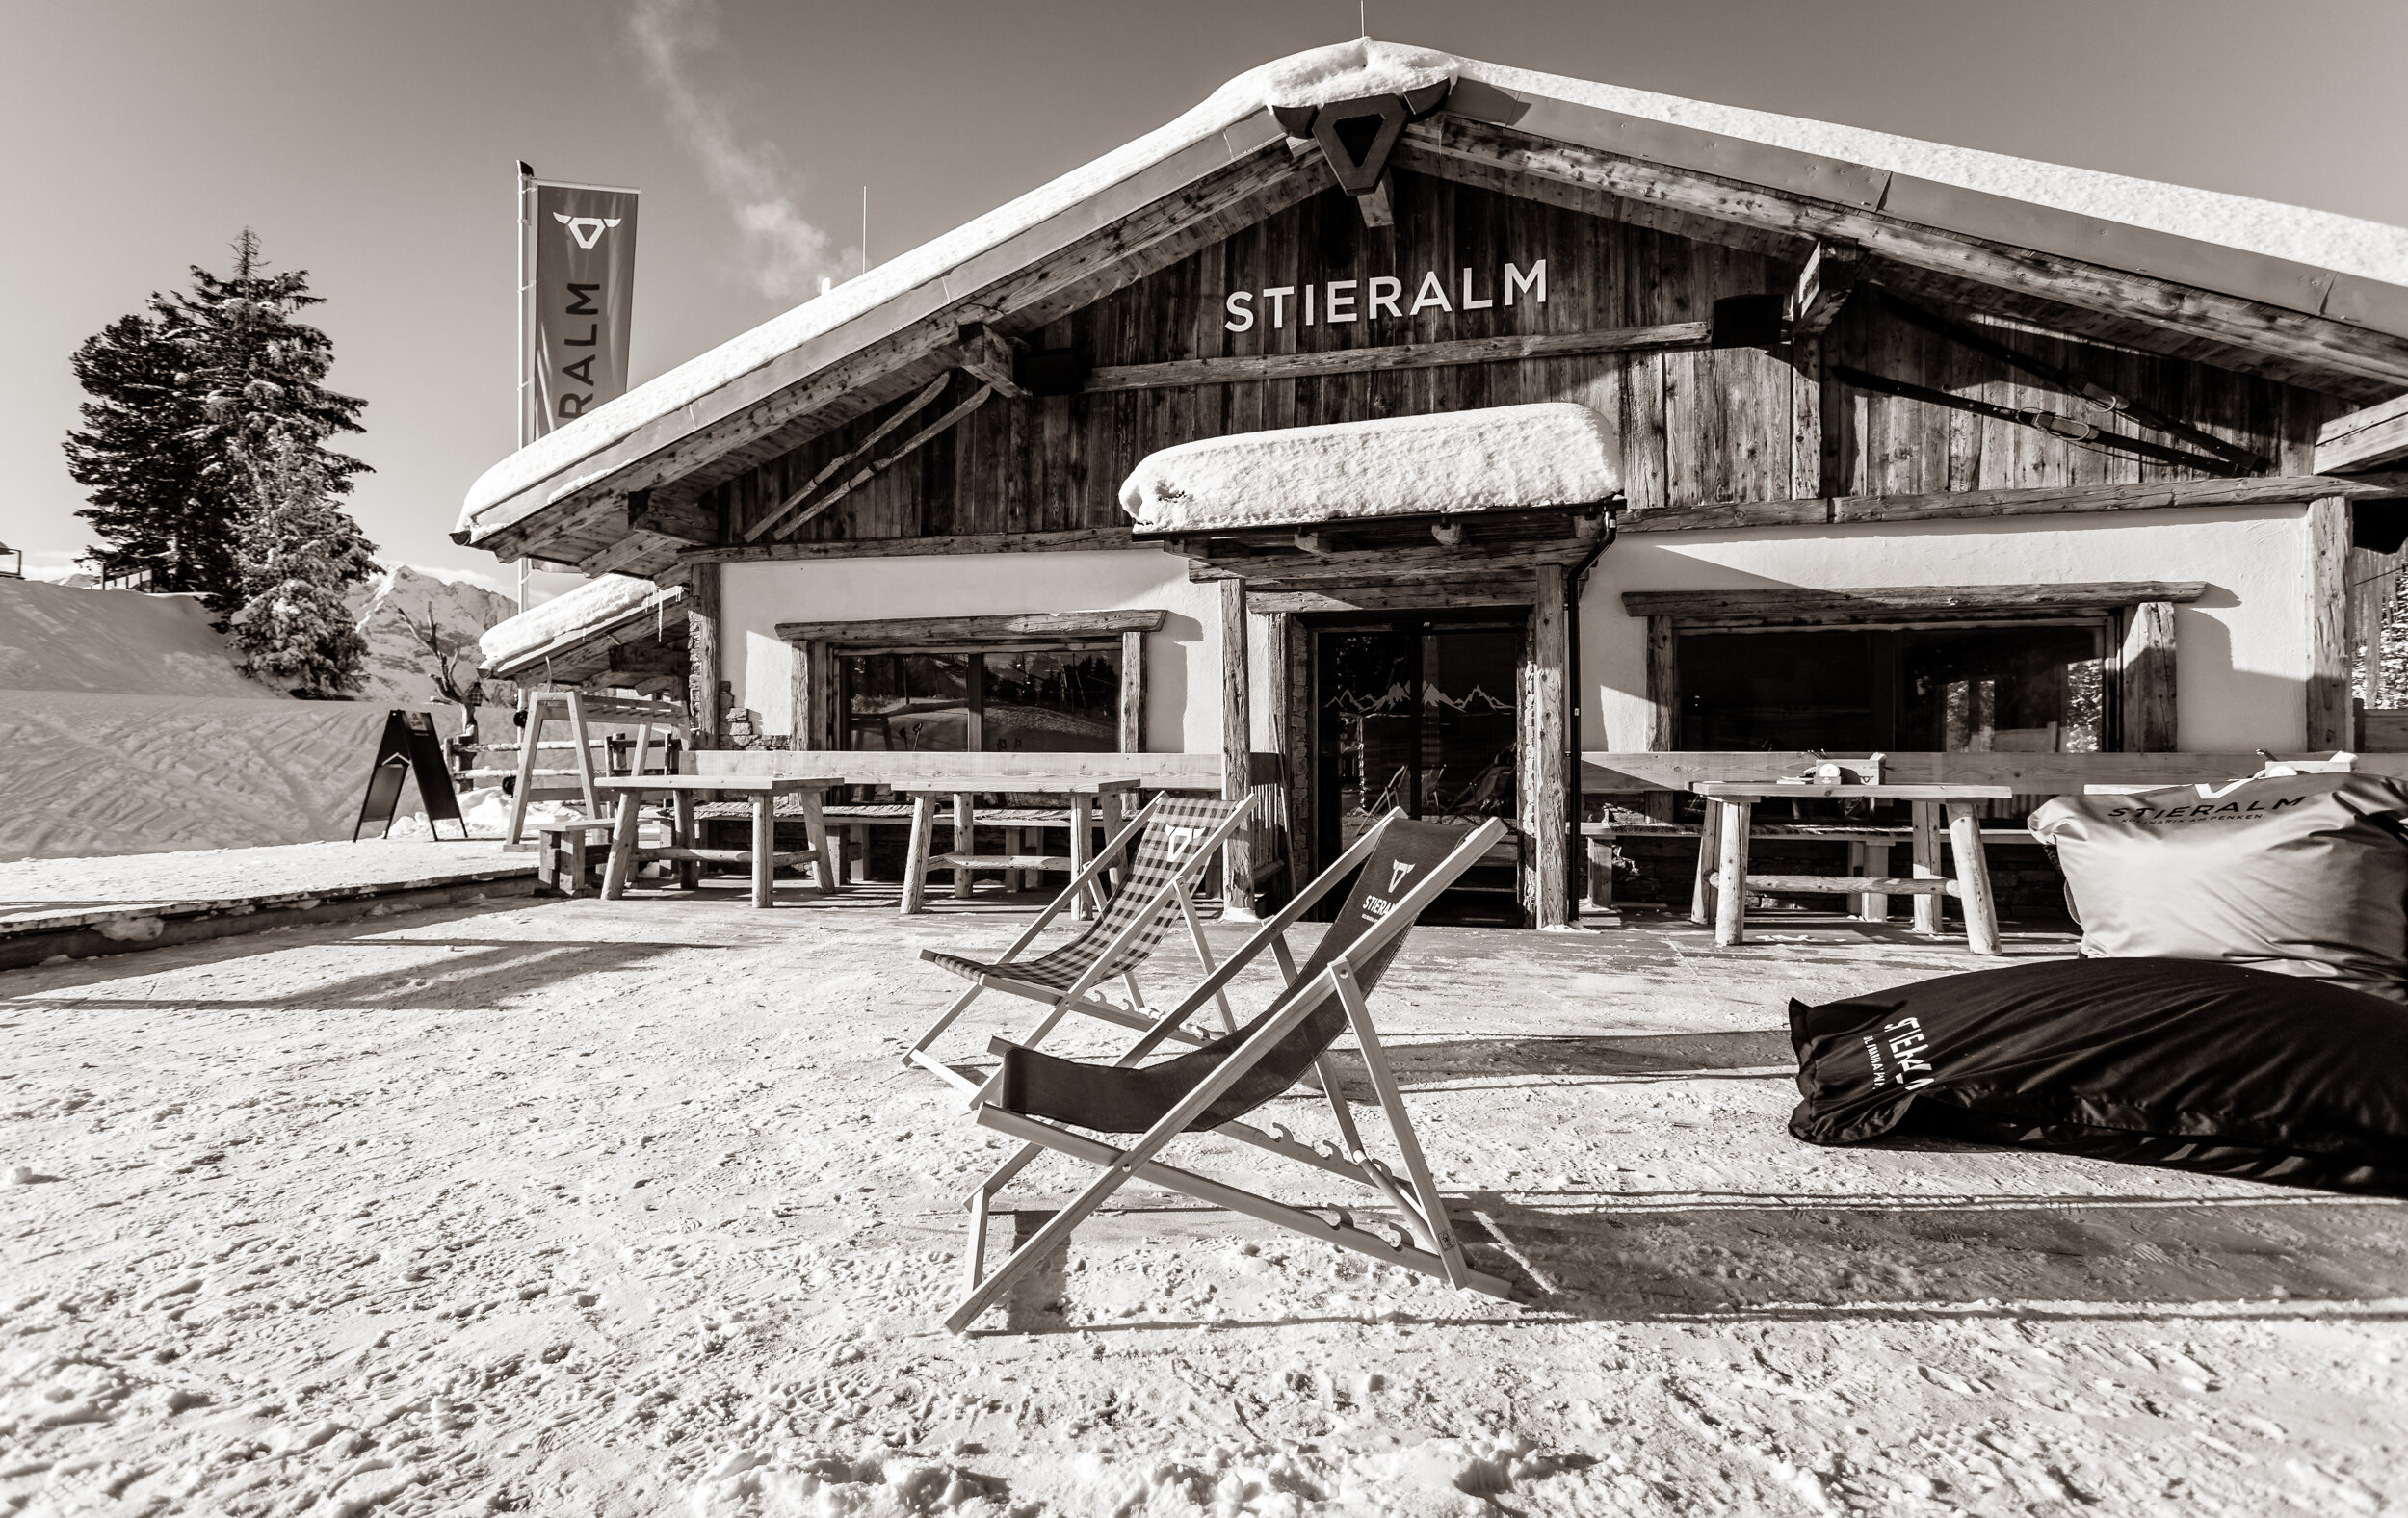 The Stieralm on the Penken mountain, during a photo shoot for its opening last winter.